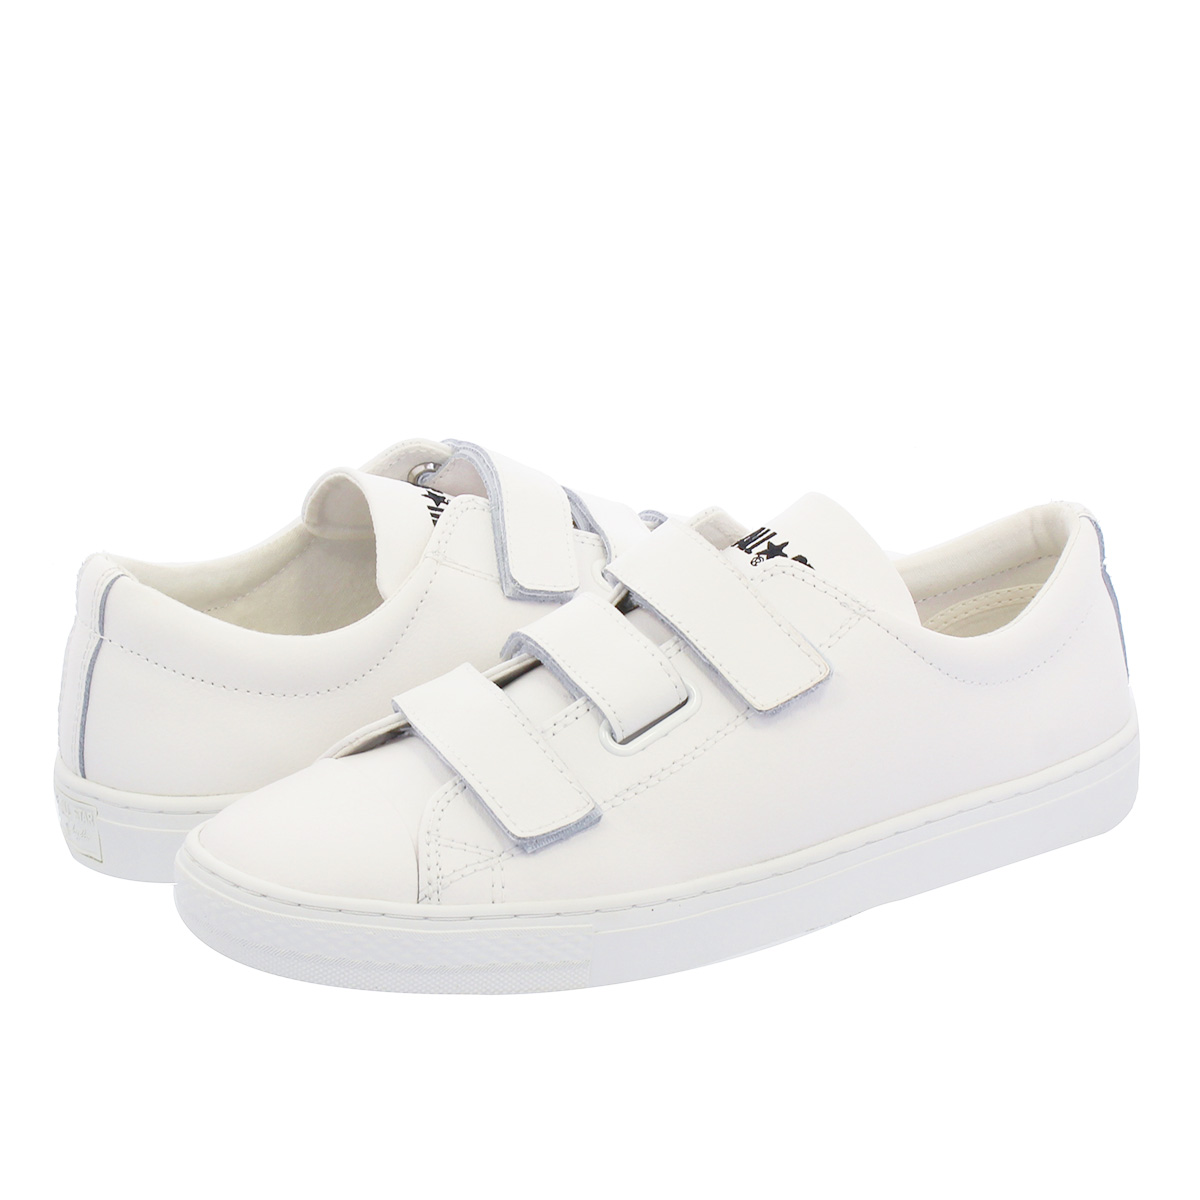 CONVERSE ALL STAR COUPE V-3 OX コンバース オールスター クップ V-3 OX WHITE 32149090